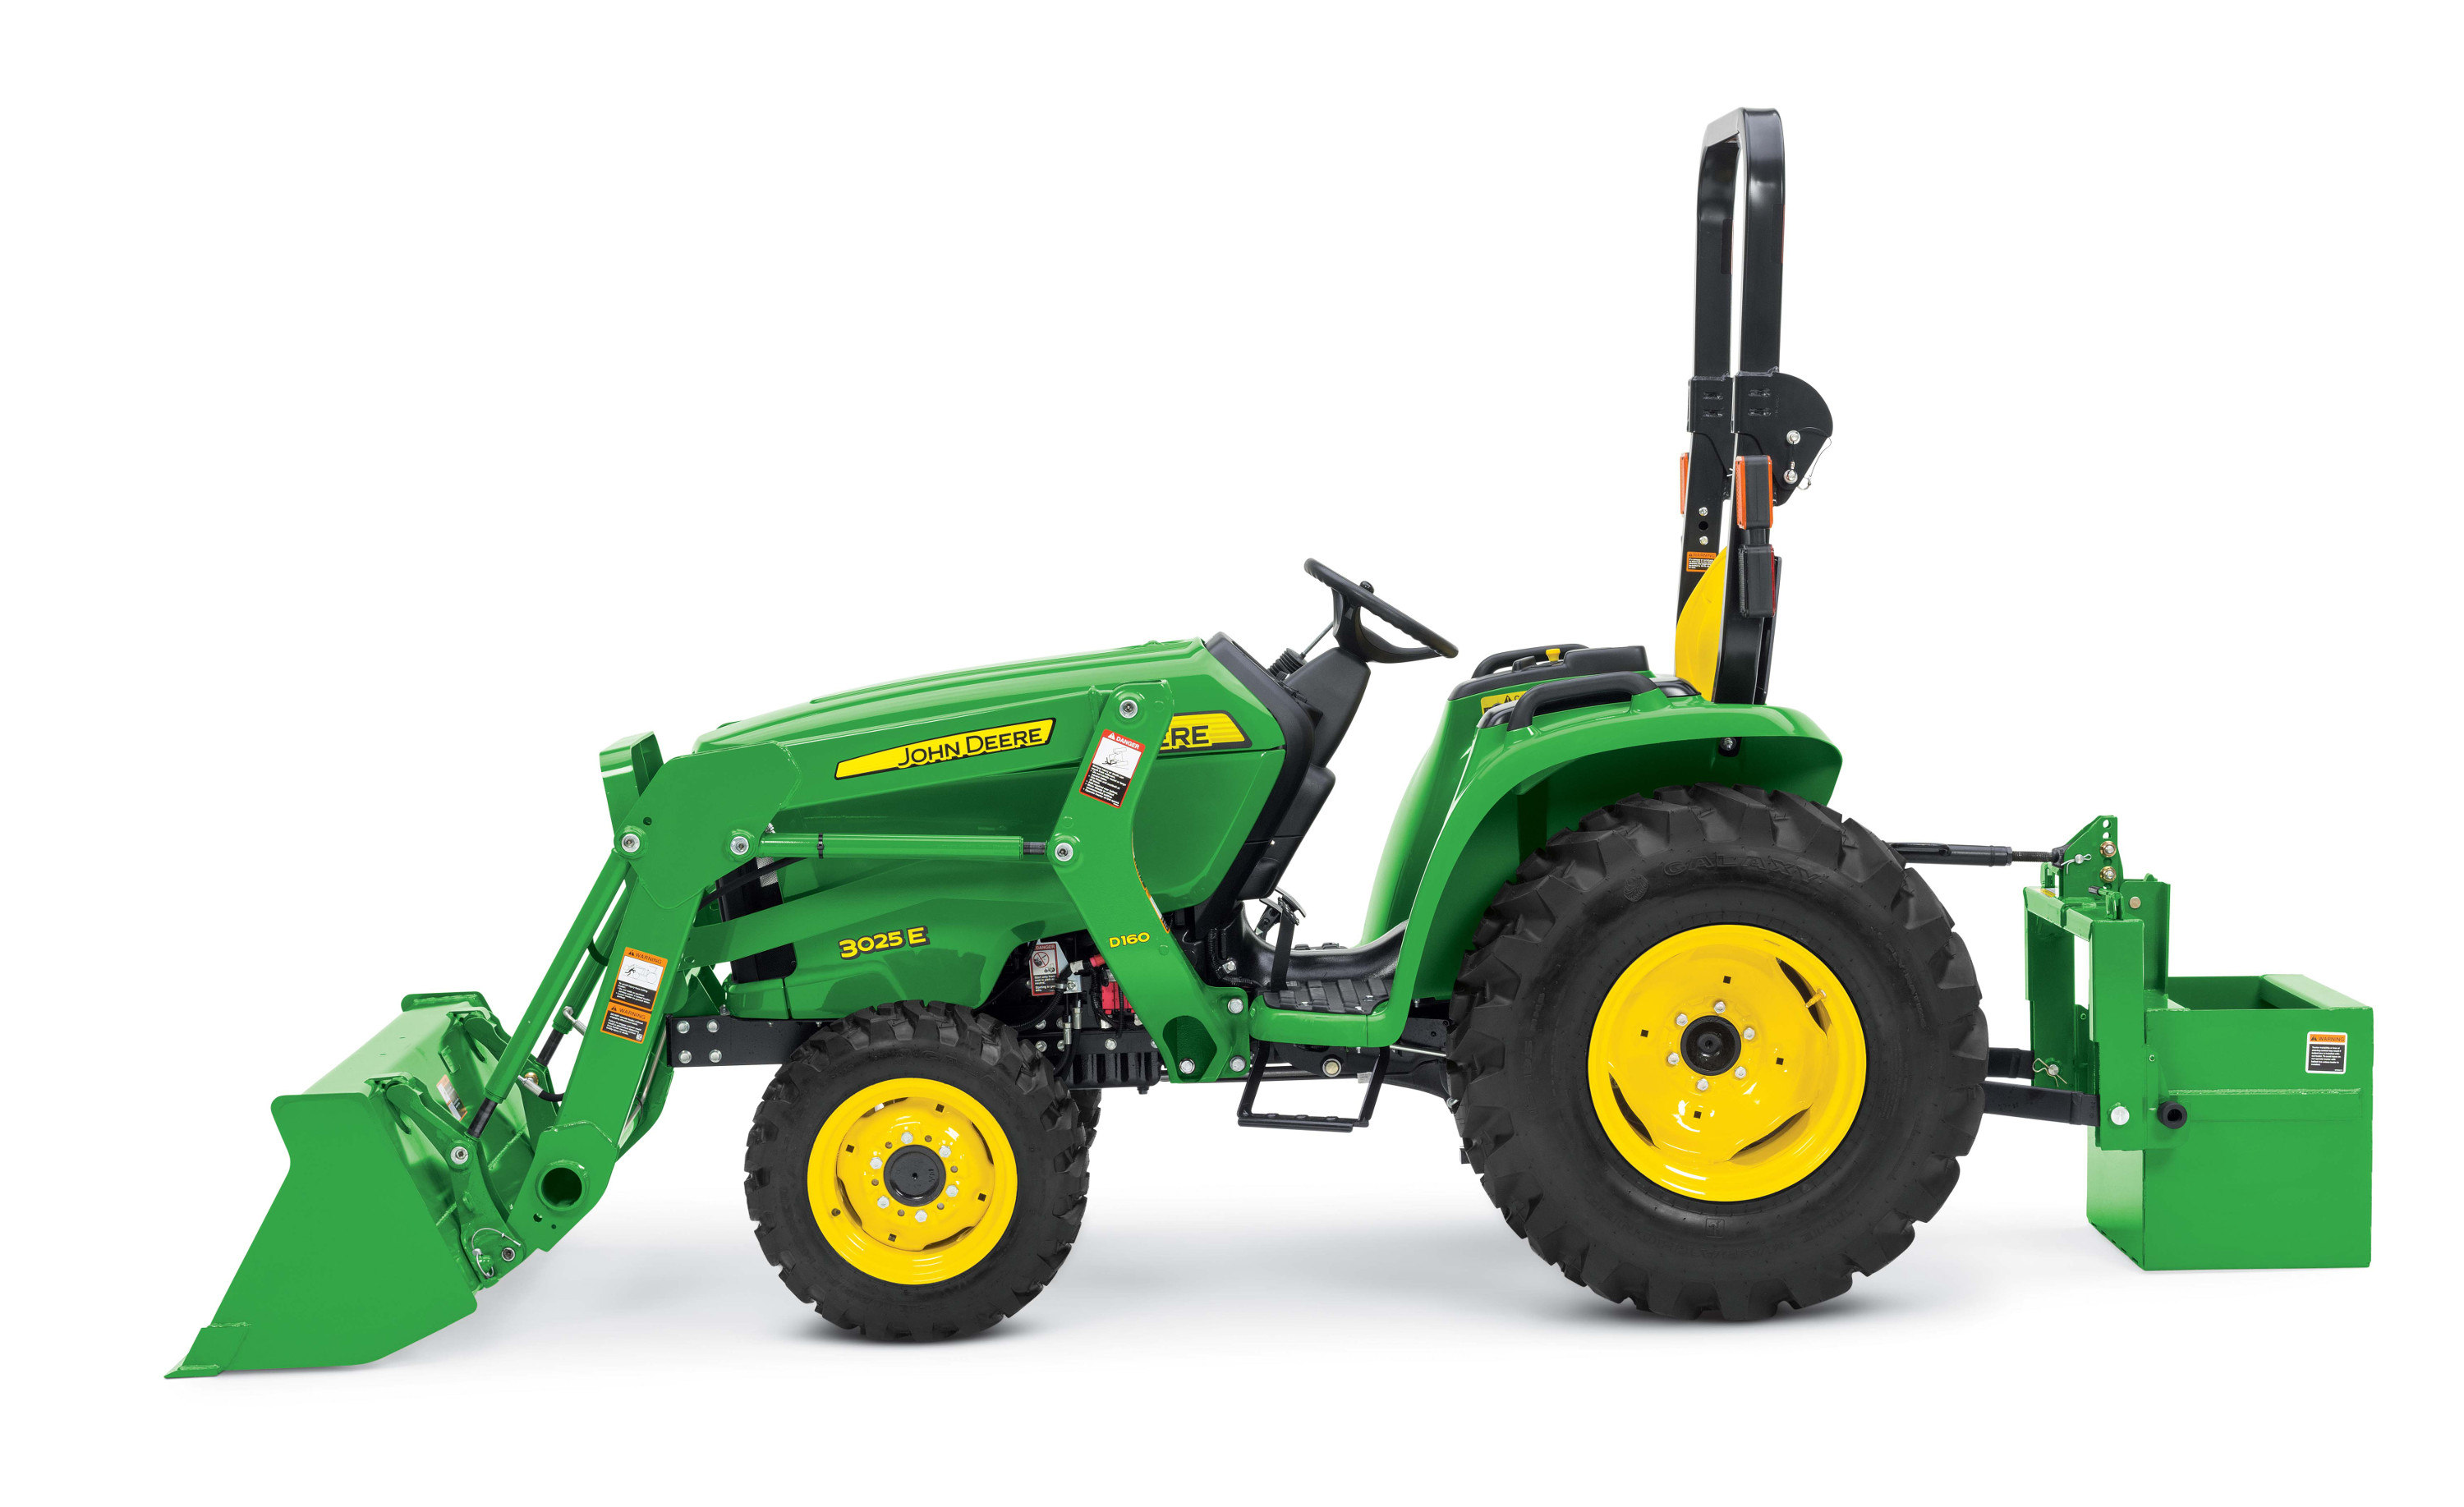 John Deere Compact Utility Tractors 5320 Fuse Box Diagram Studio Sideview Image Of A 3025e Tractor